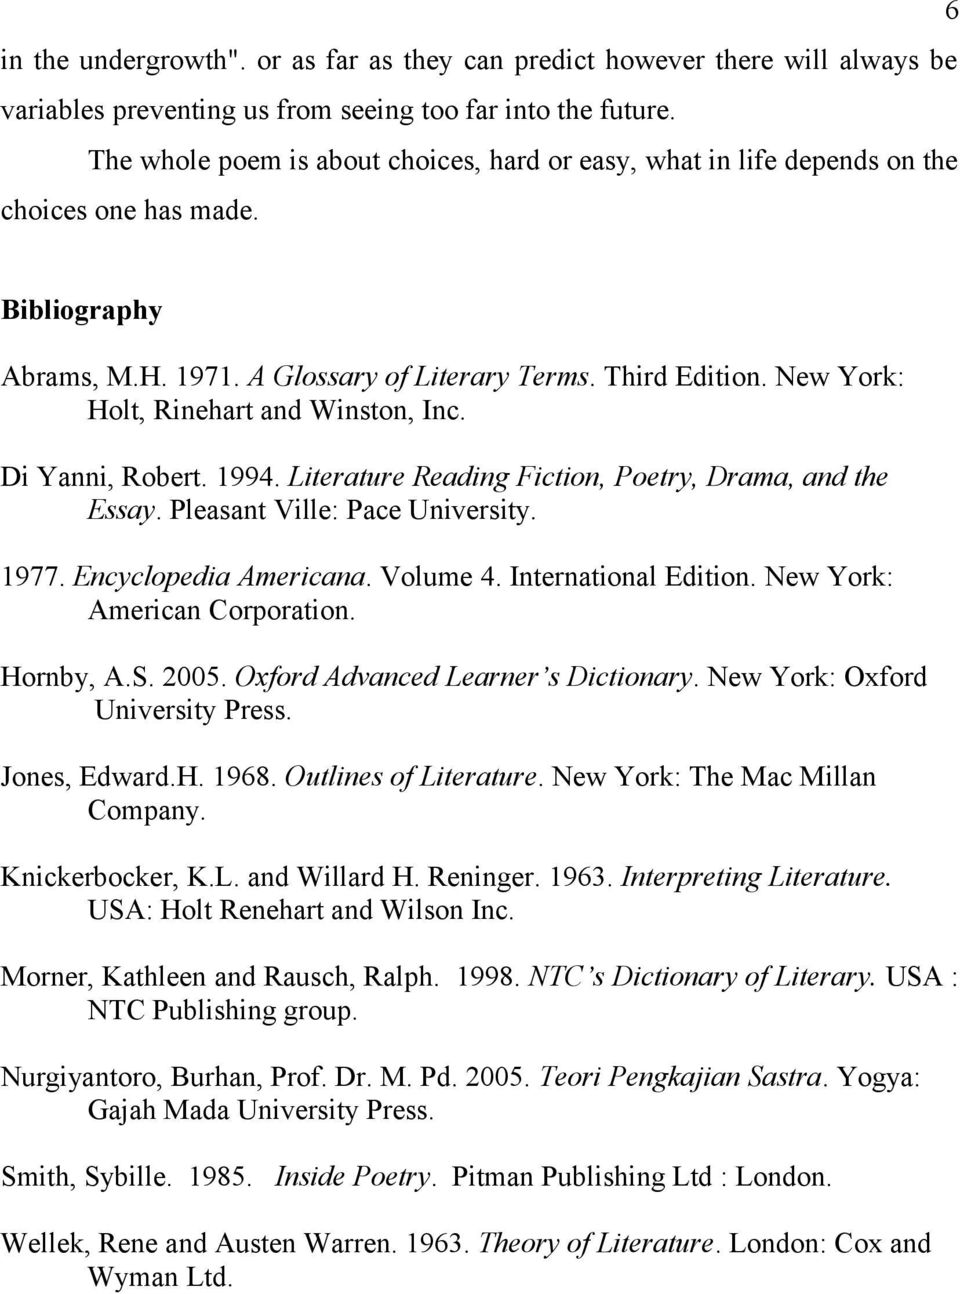 New York: Holt, Rinehart and Winston, Inc. Di Yanni, Robert. 1994. Literature Reading Fiction, Poetry, Drama, and the Essay. Pleasant Ville: Pace University. 1977. Encyclopedia Americana. Volume 4.